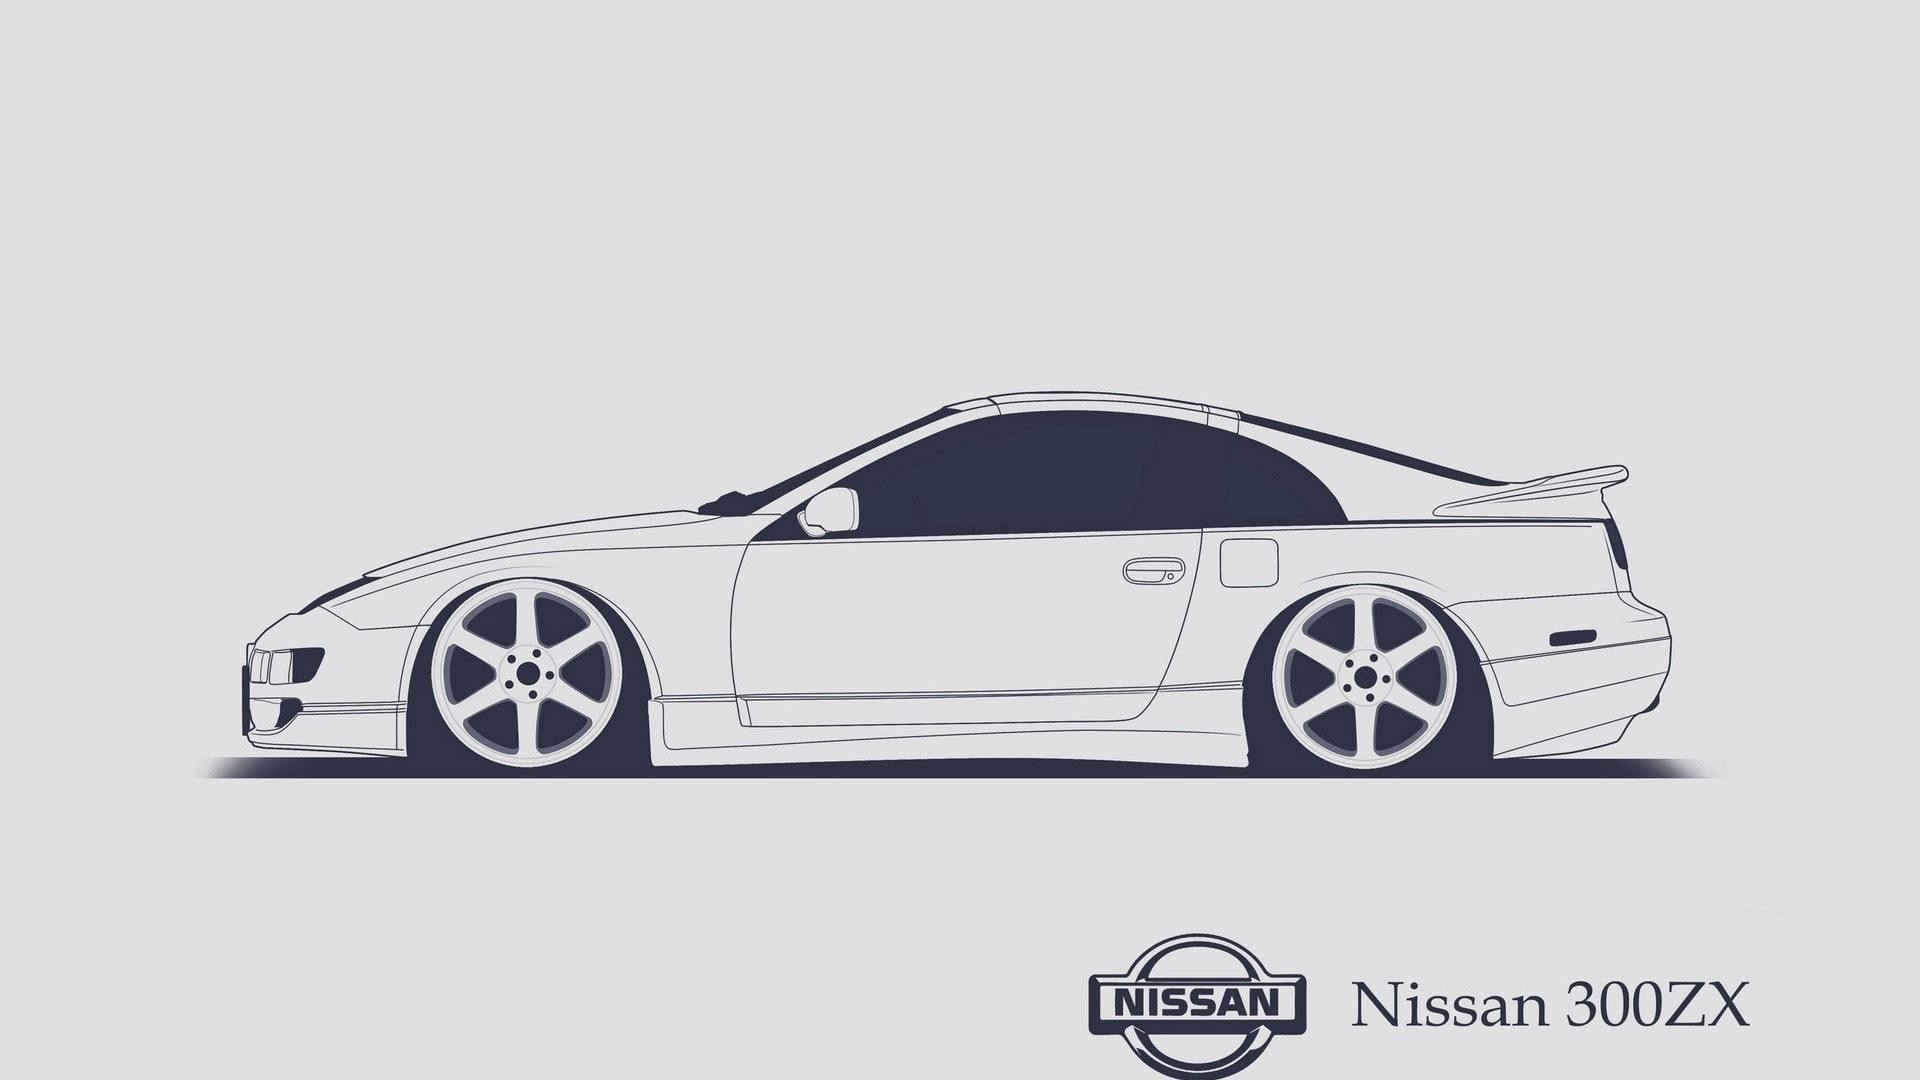 wallpaper.wiki-Nissan-300zx-Vector-Pictures-PIC-WPD001553